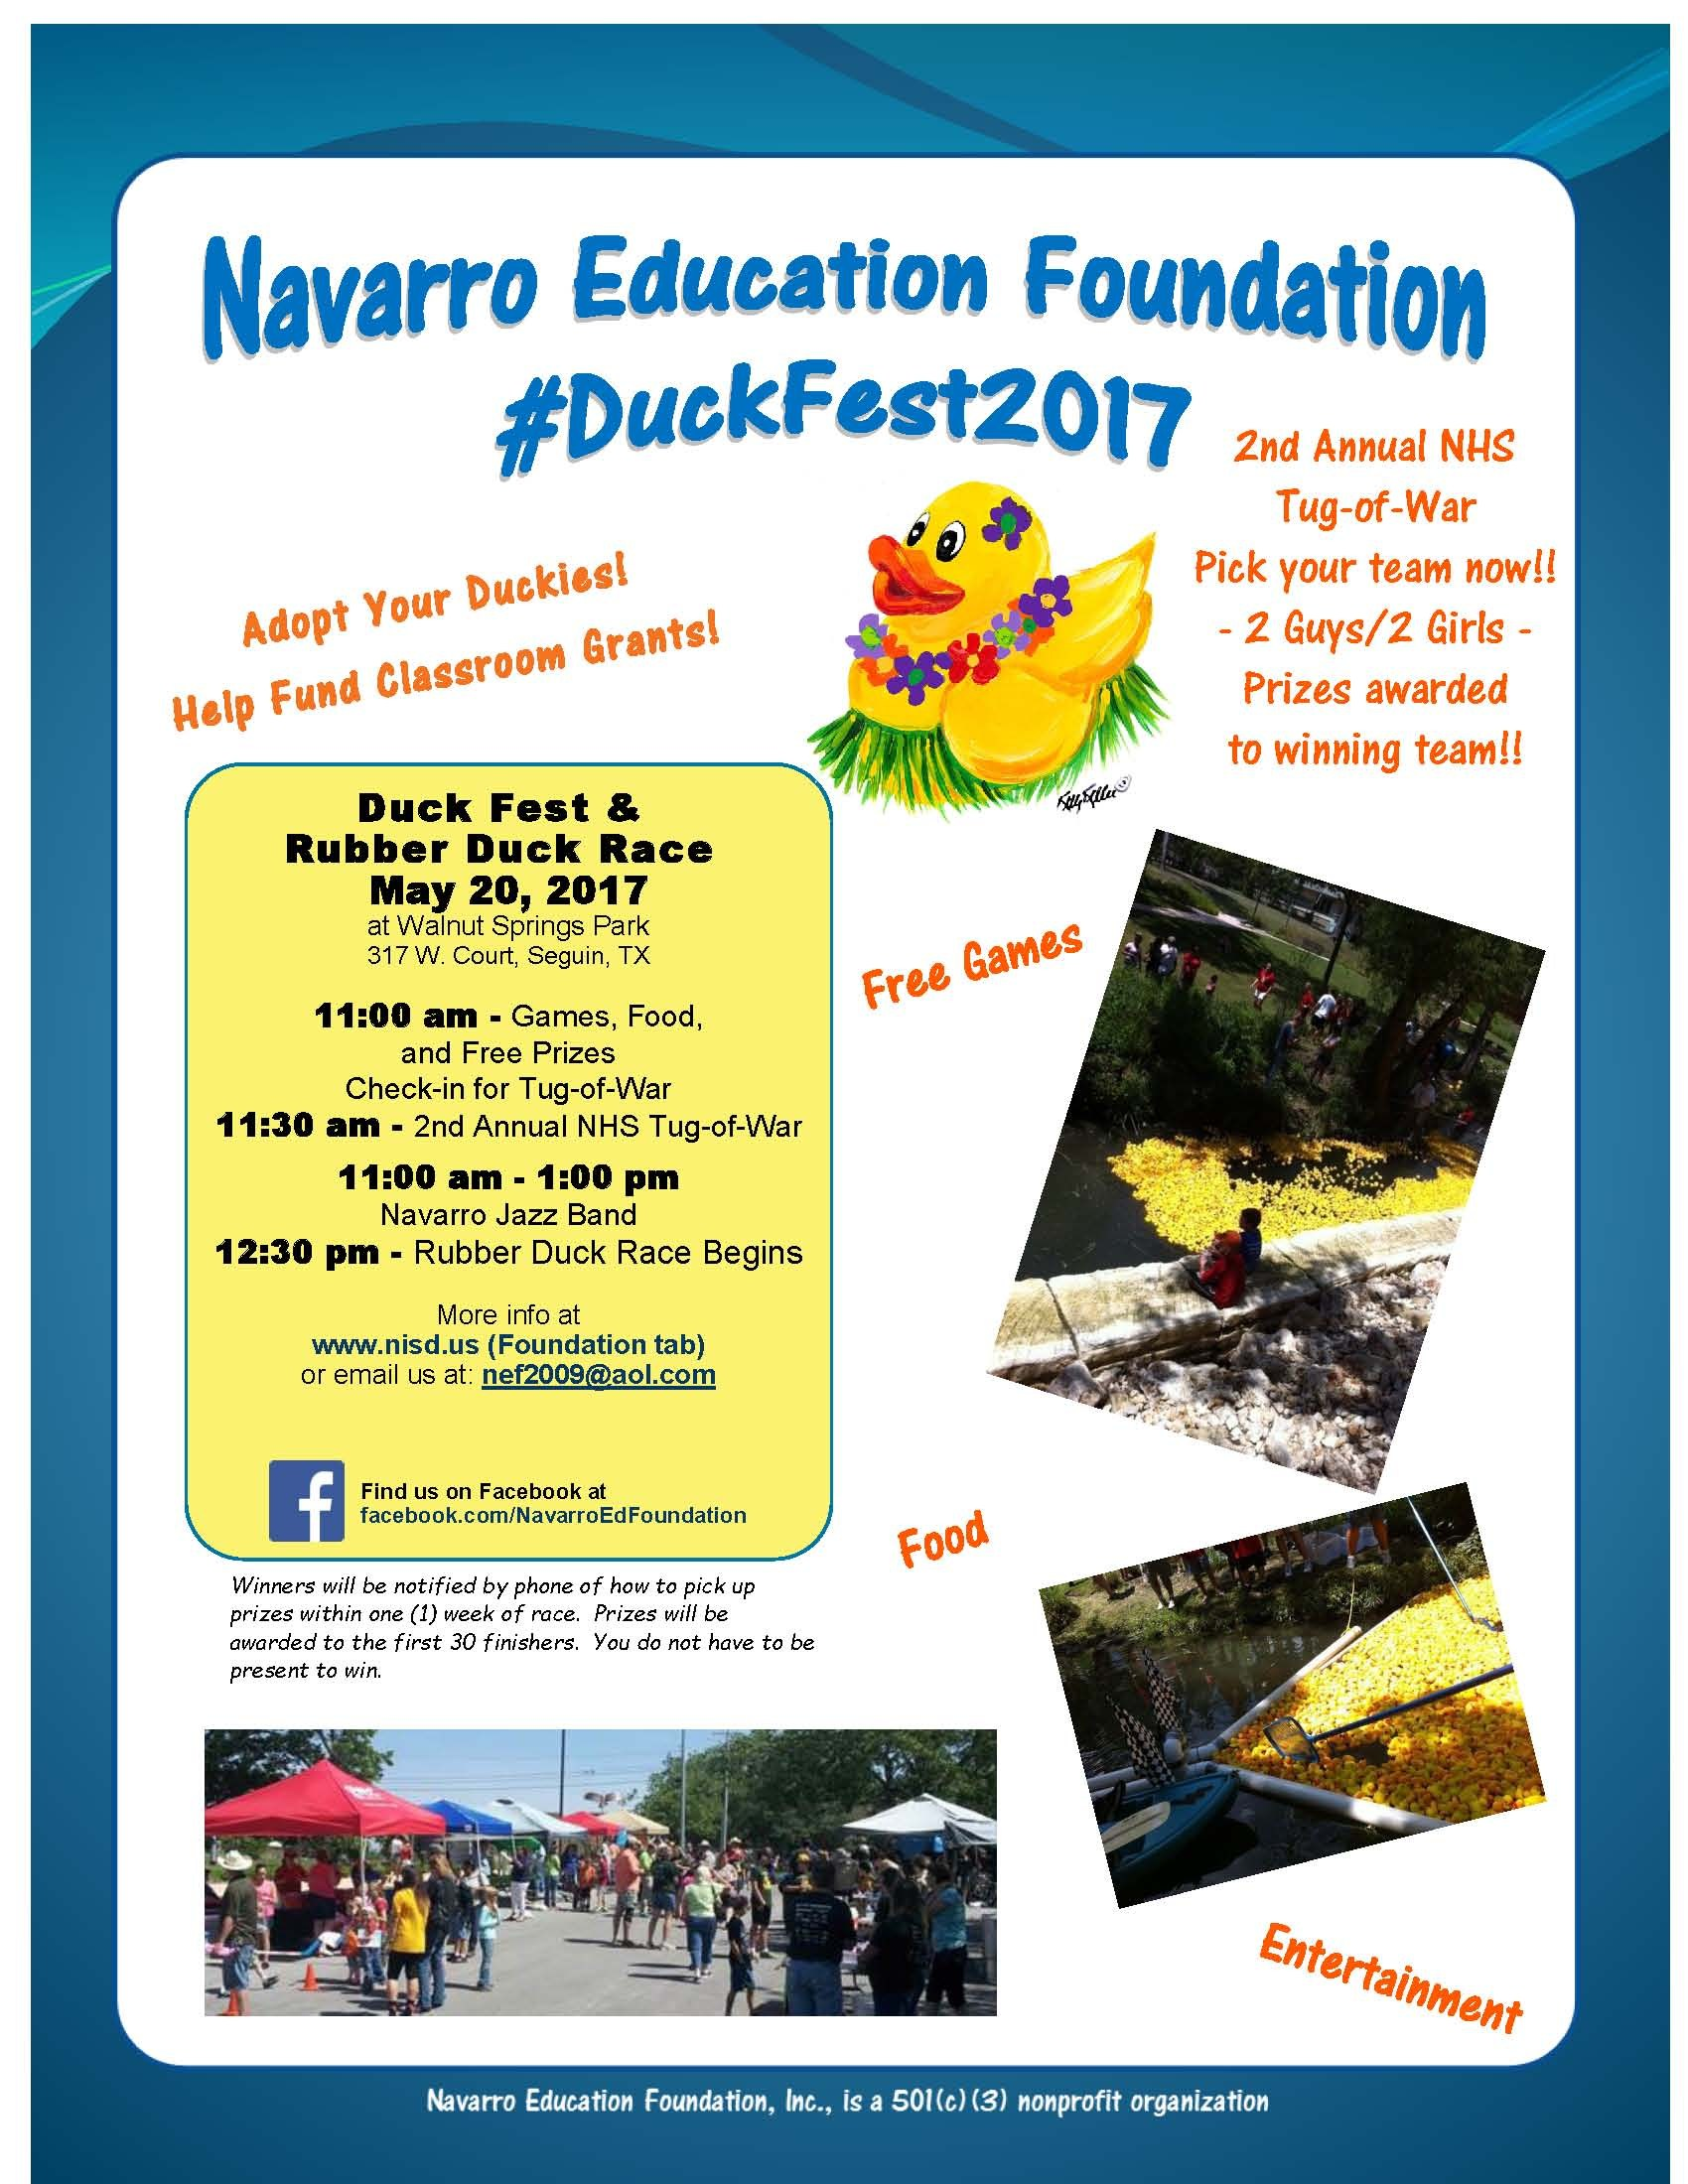 Picture of Duck Fest 2017 poster advertising Duck Fest